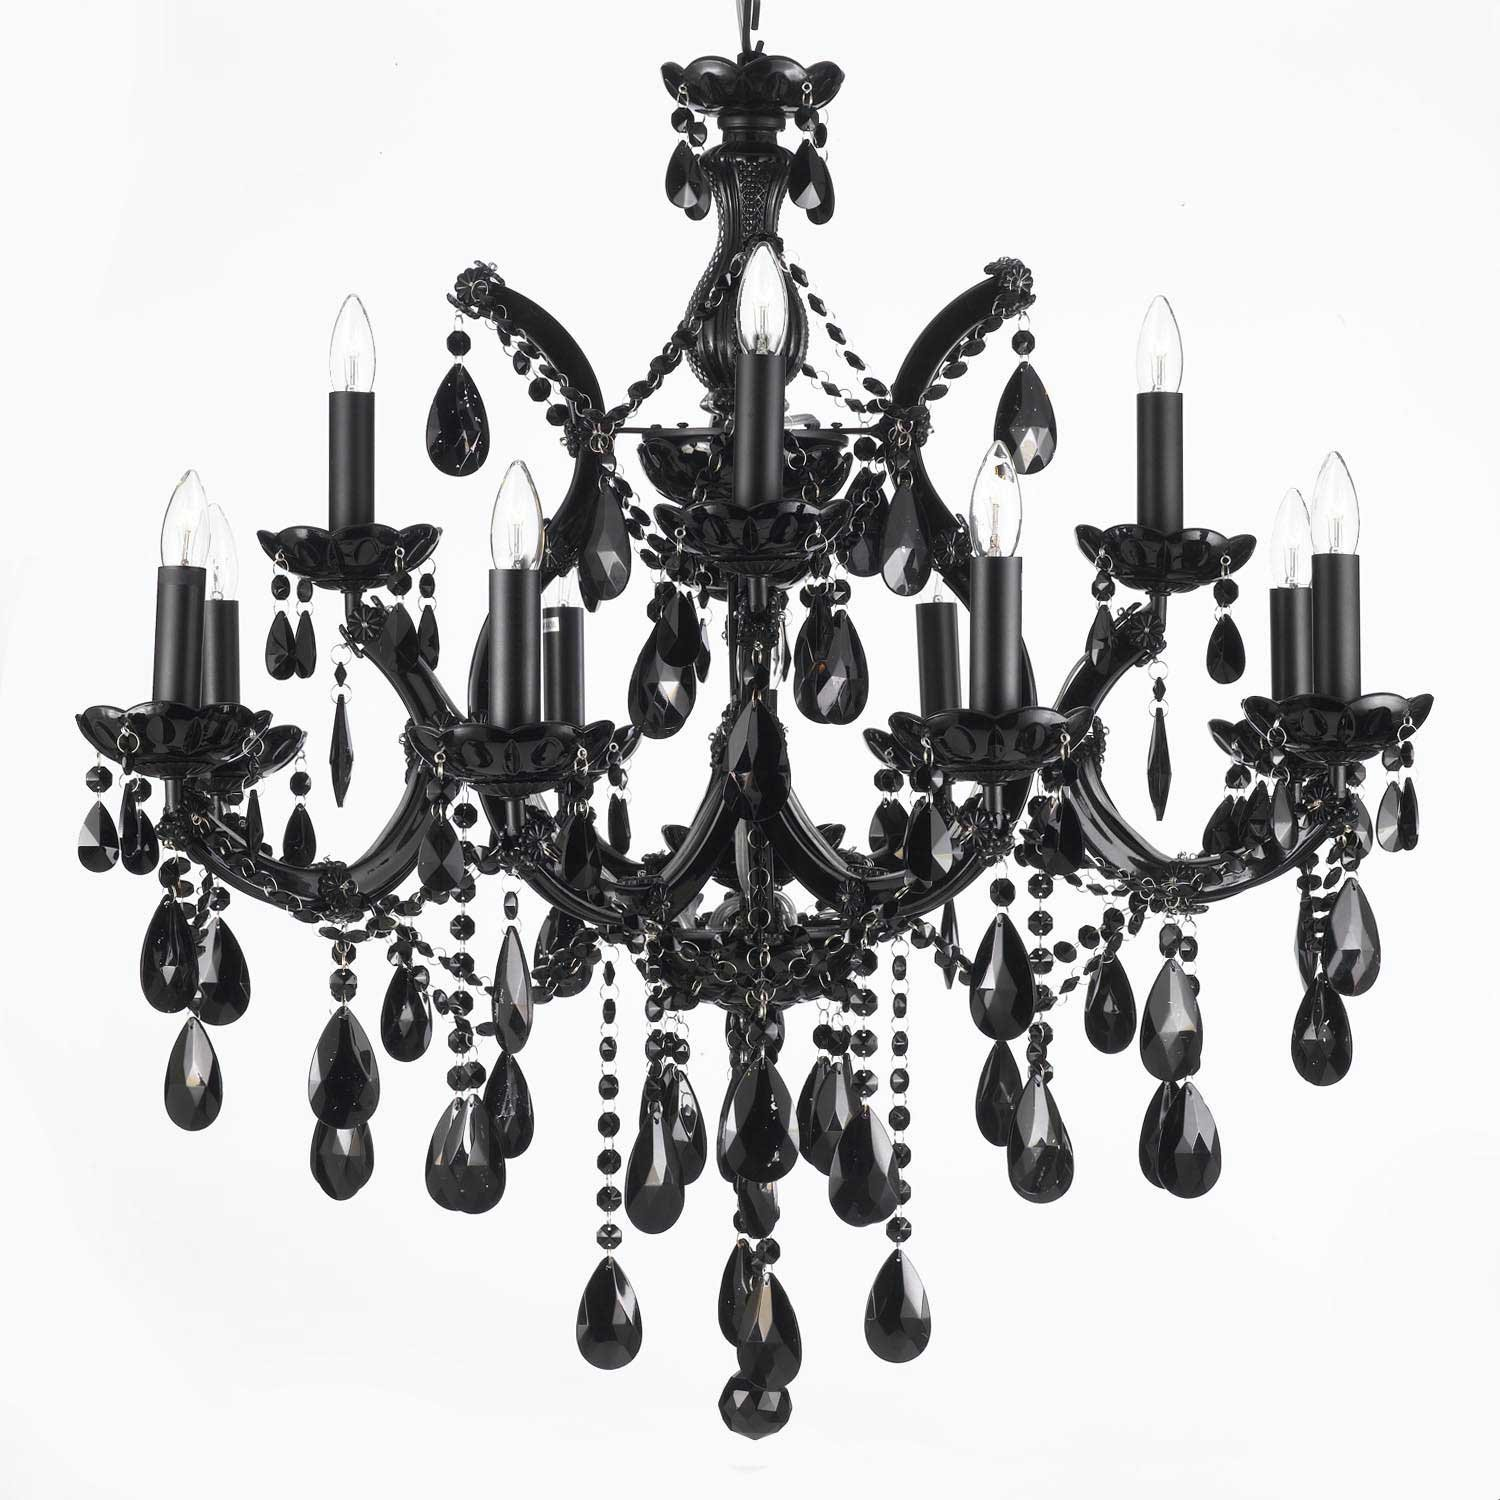 Amazing Spanish Style Lighting Fixtures | Charming Gothic Chandelier Design